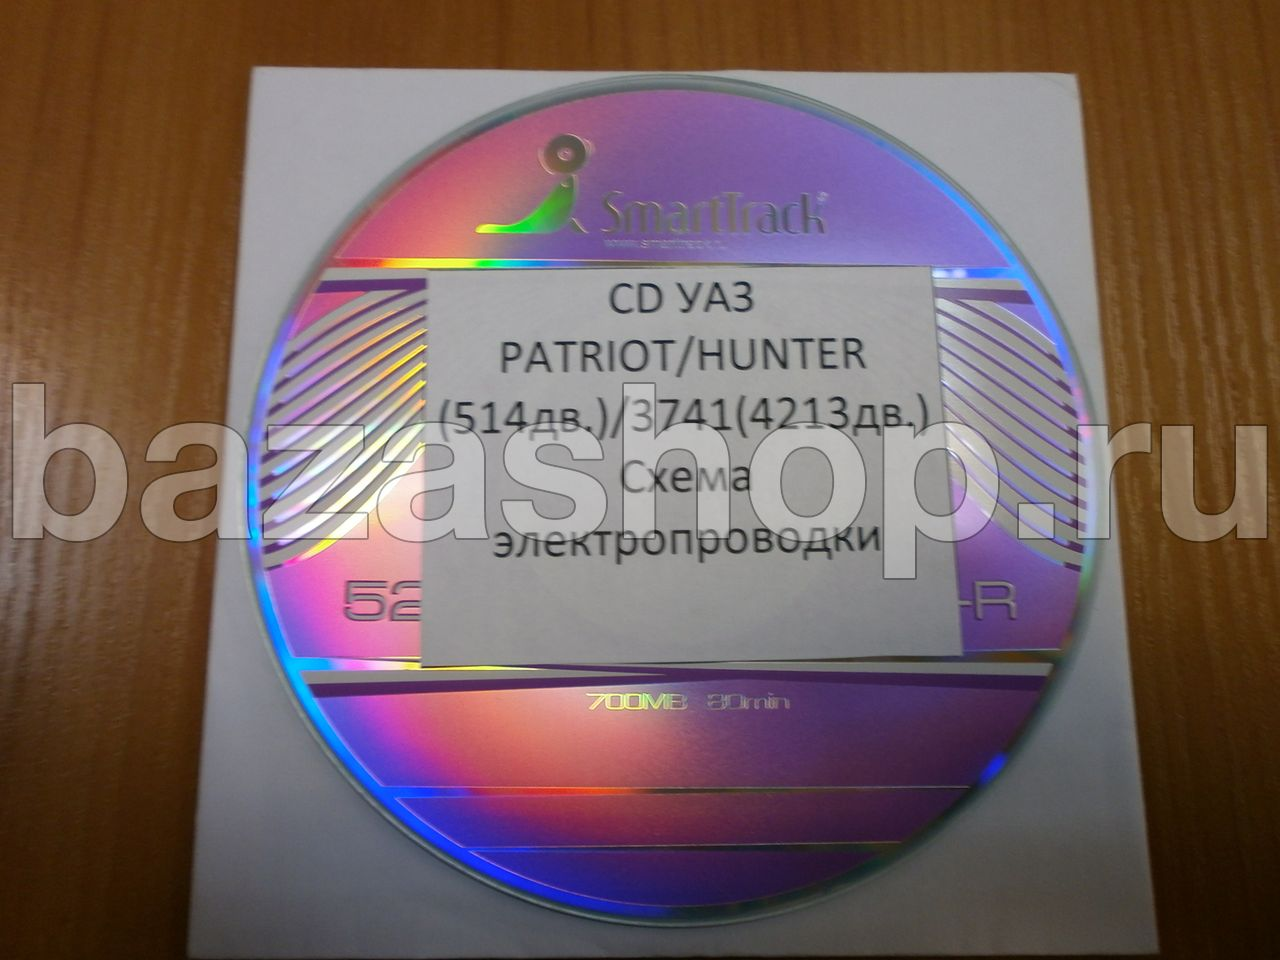 CD УАЗ PATRIOT/HUNTER (514дв.